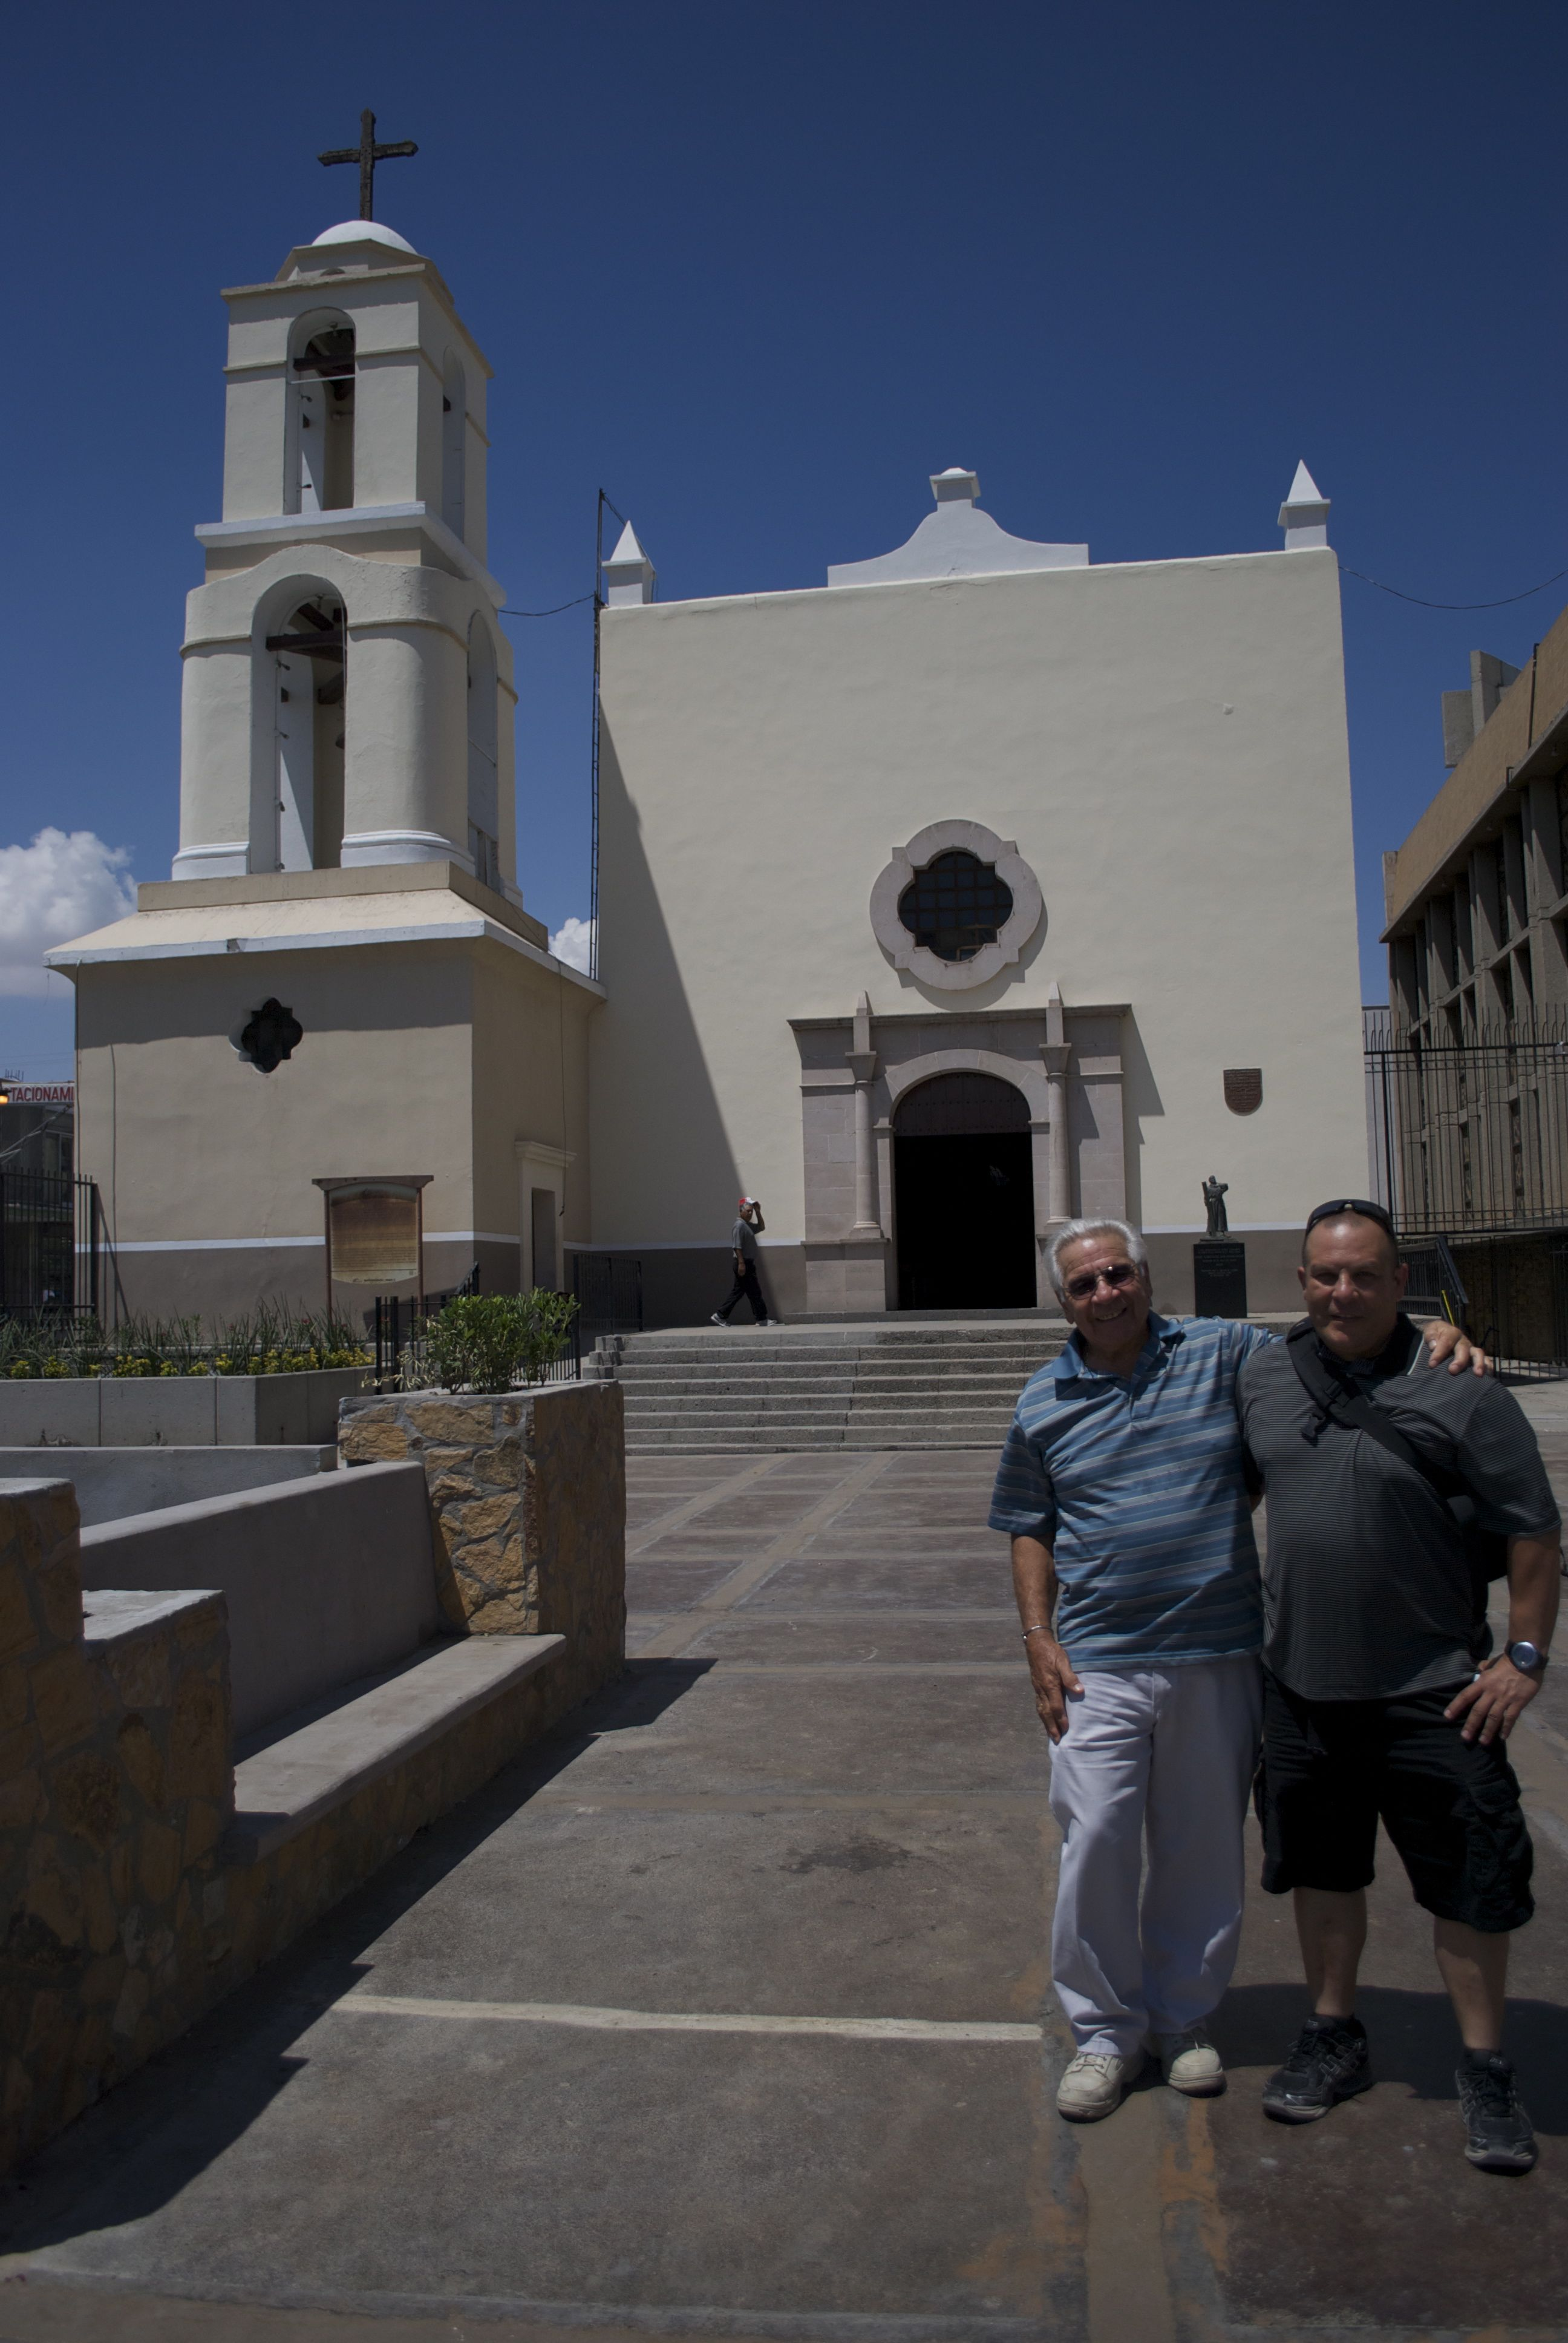 George Philip Stoltz and George Charles Stoltz at the Guadalupe Mission, Juárez, 2013